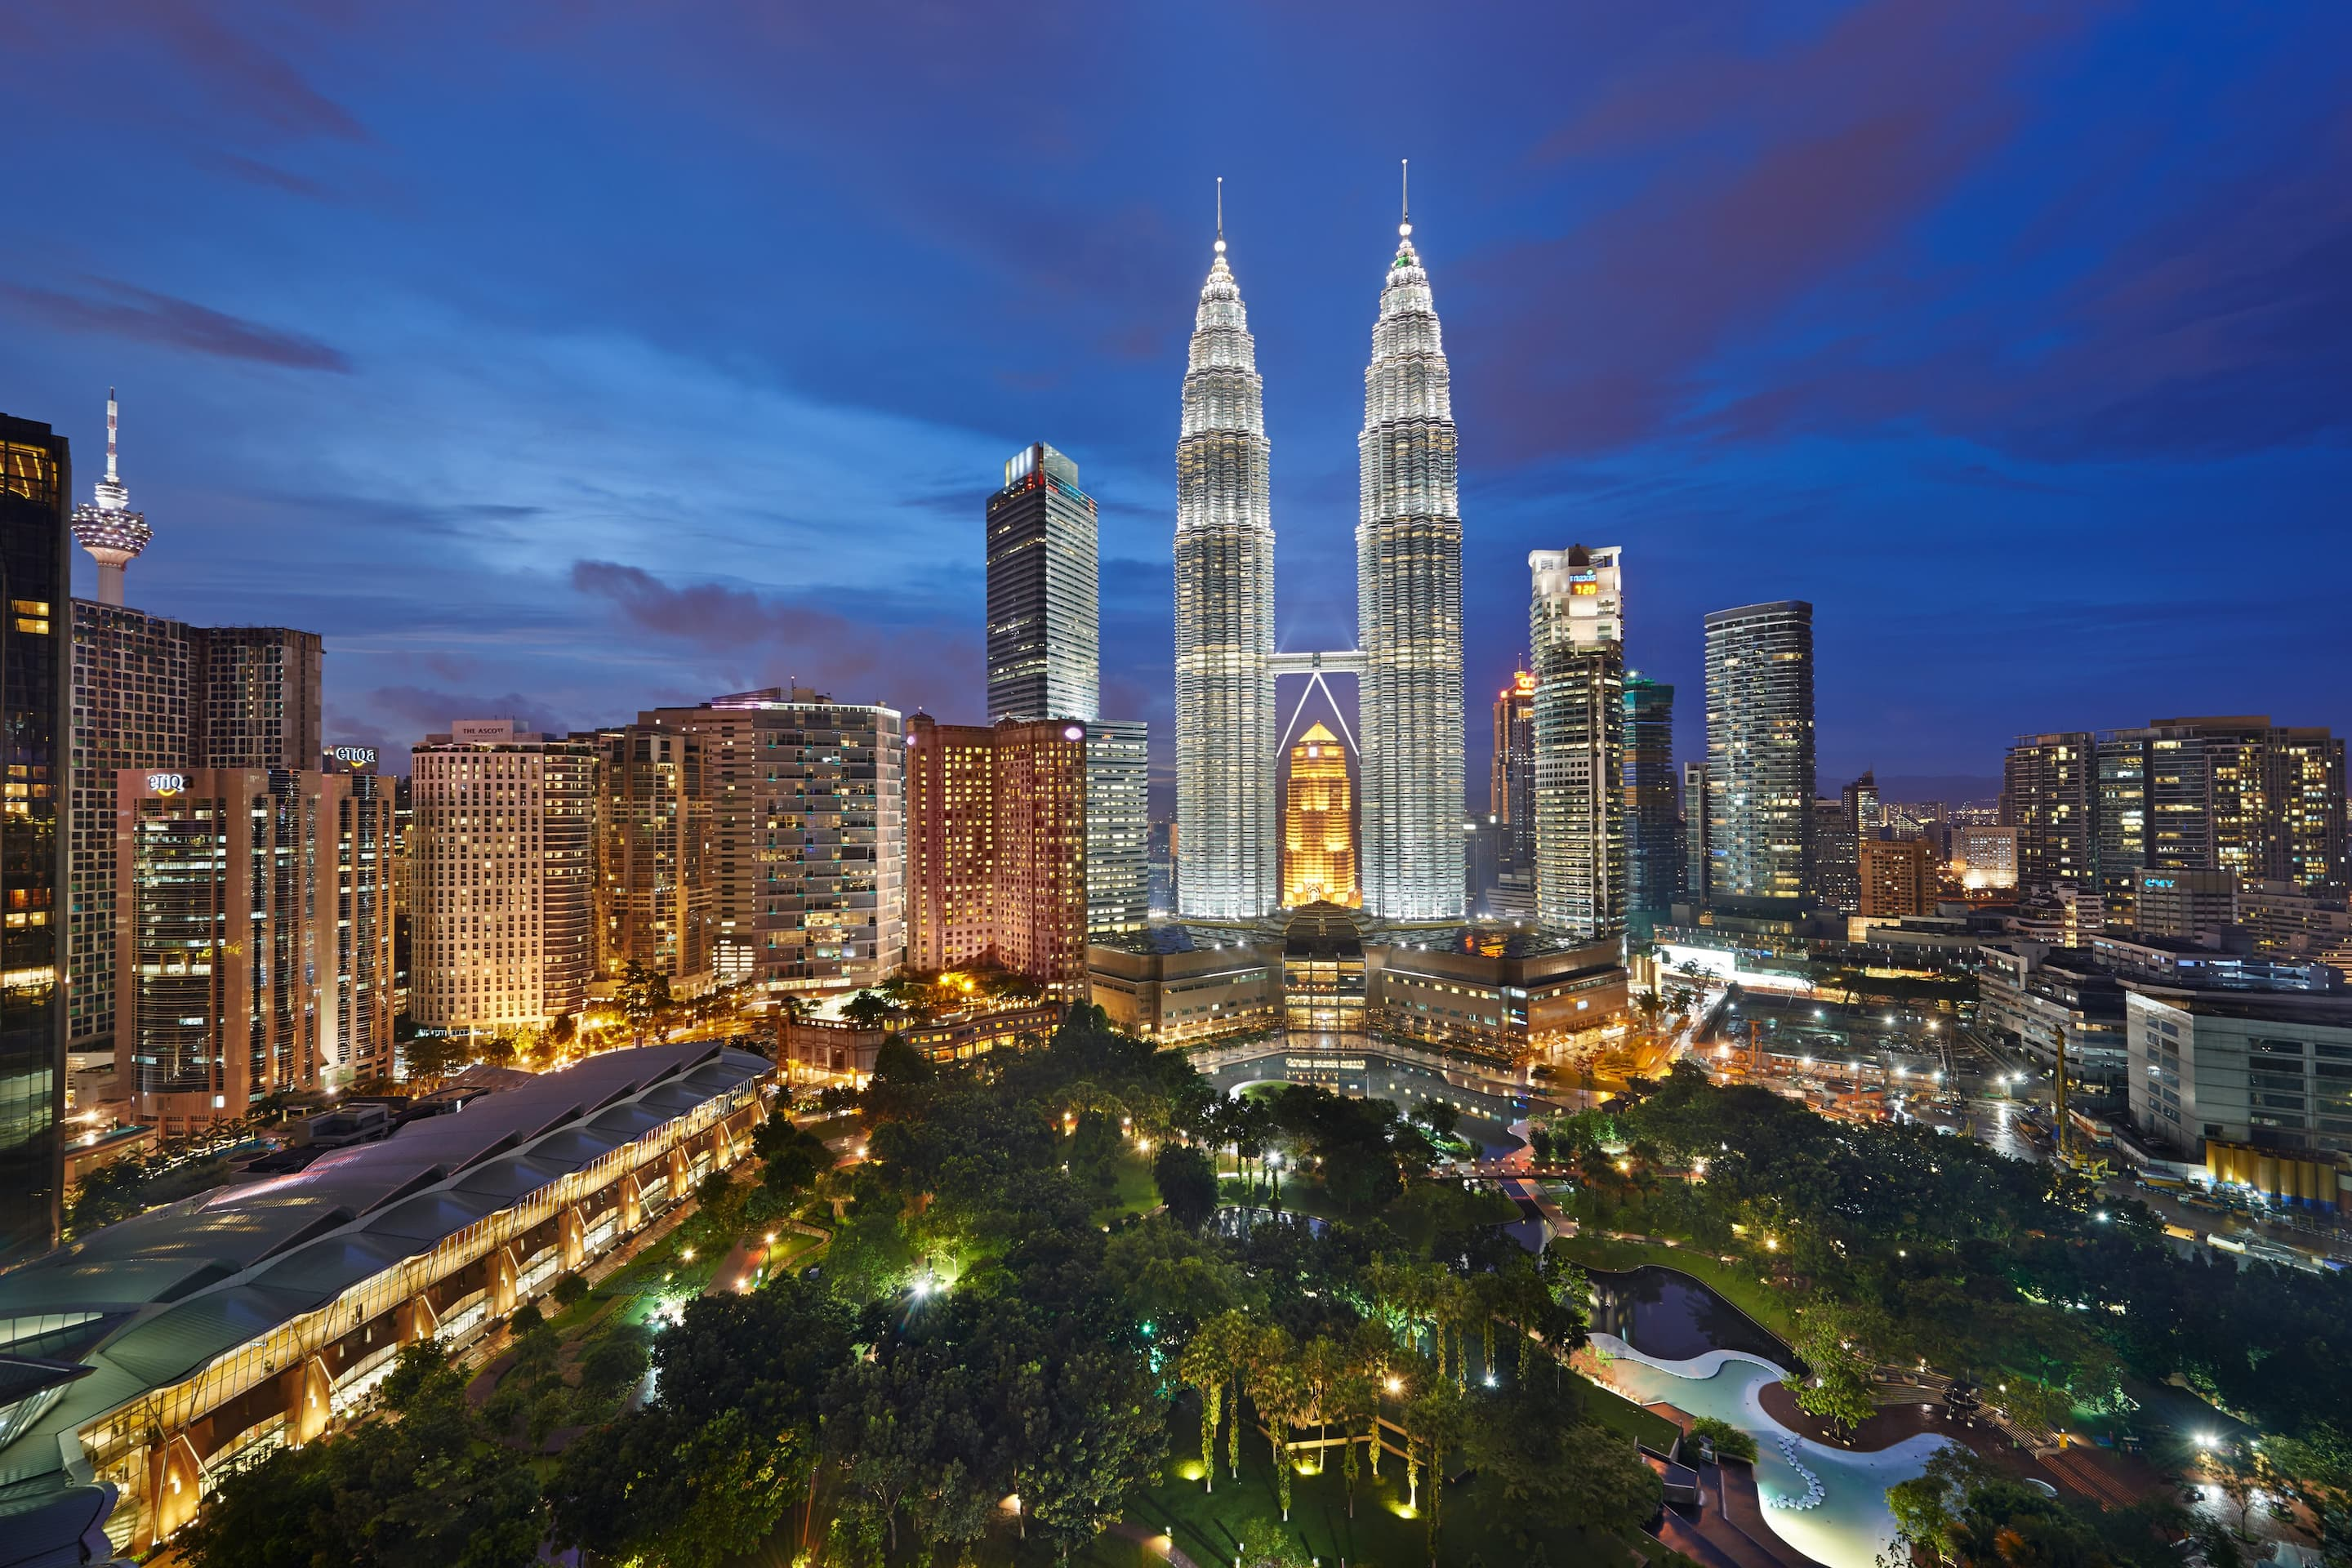 View of Petronas Twin Towers at night